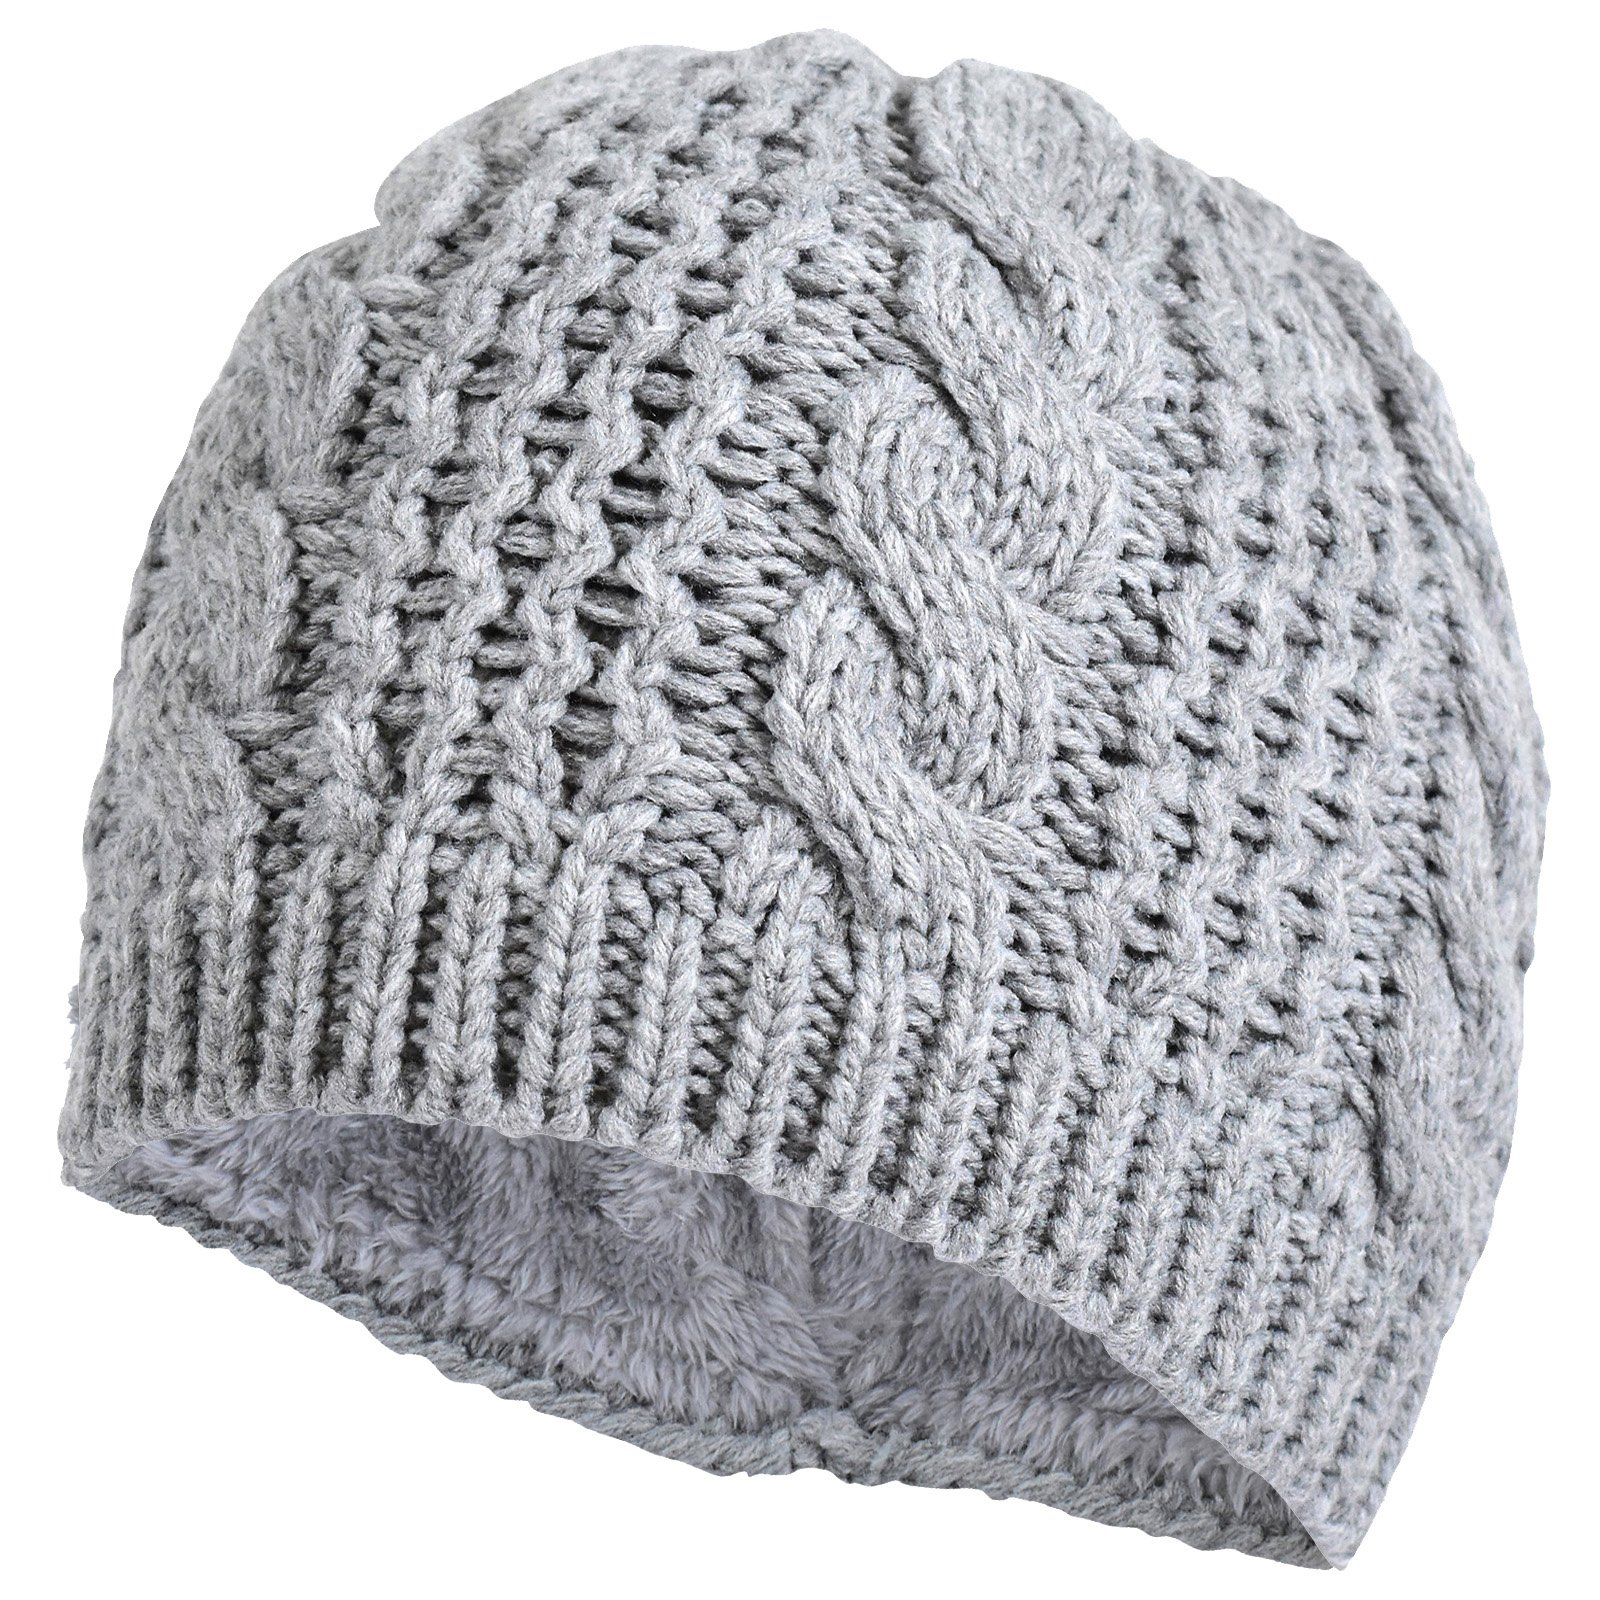 TrailHeads Women's Cable Knit Ponytail Beanie - storm grey by TrailHeads (Image #9)